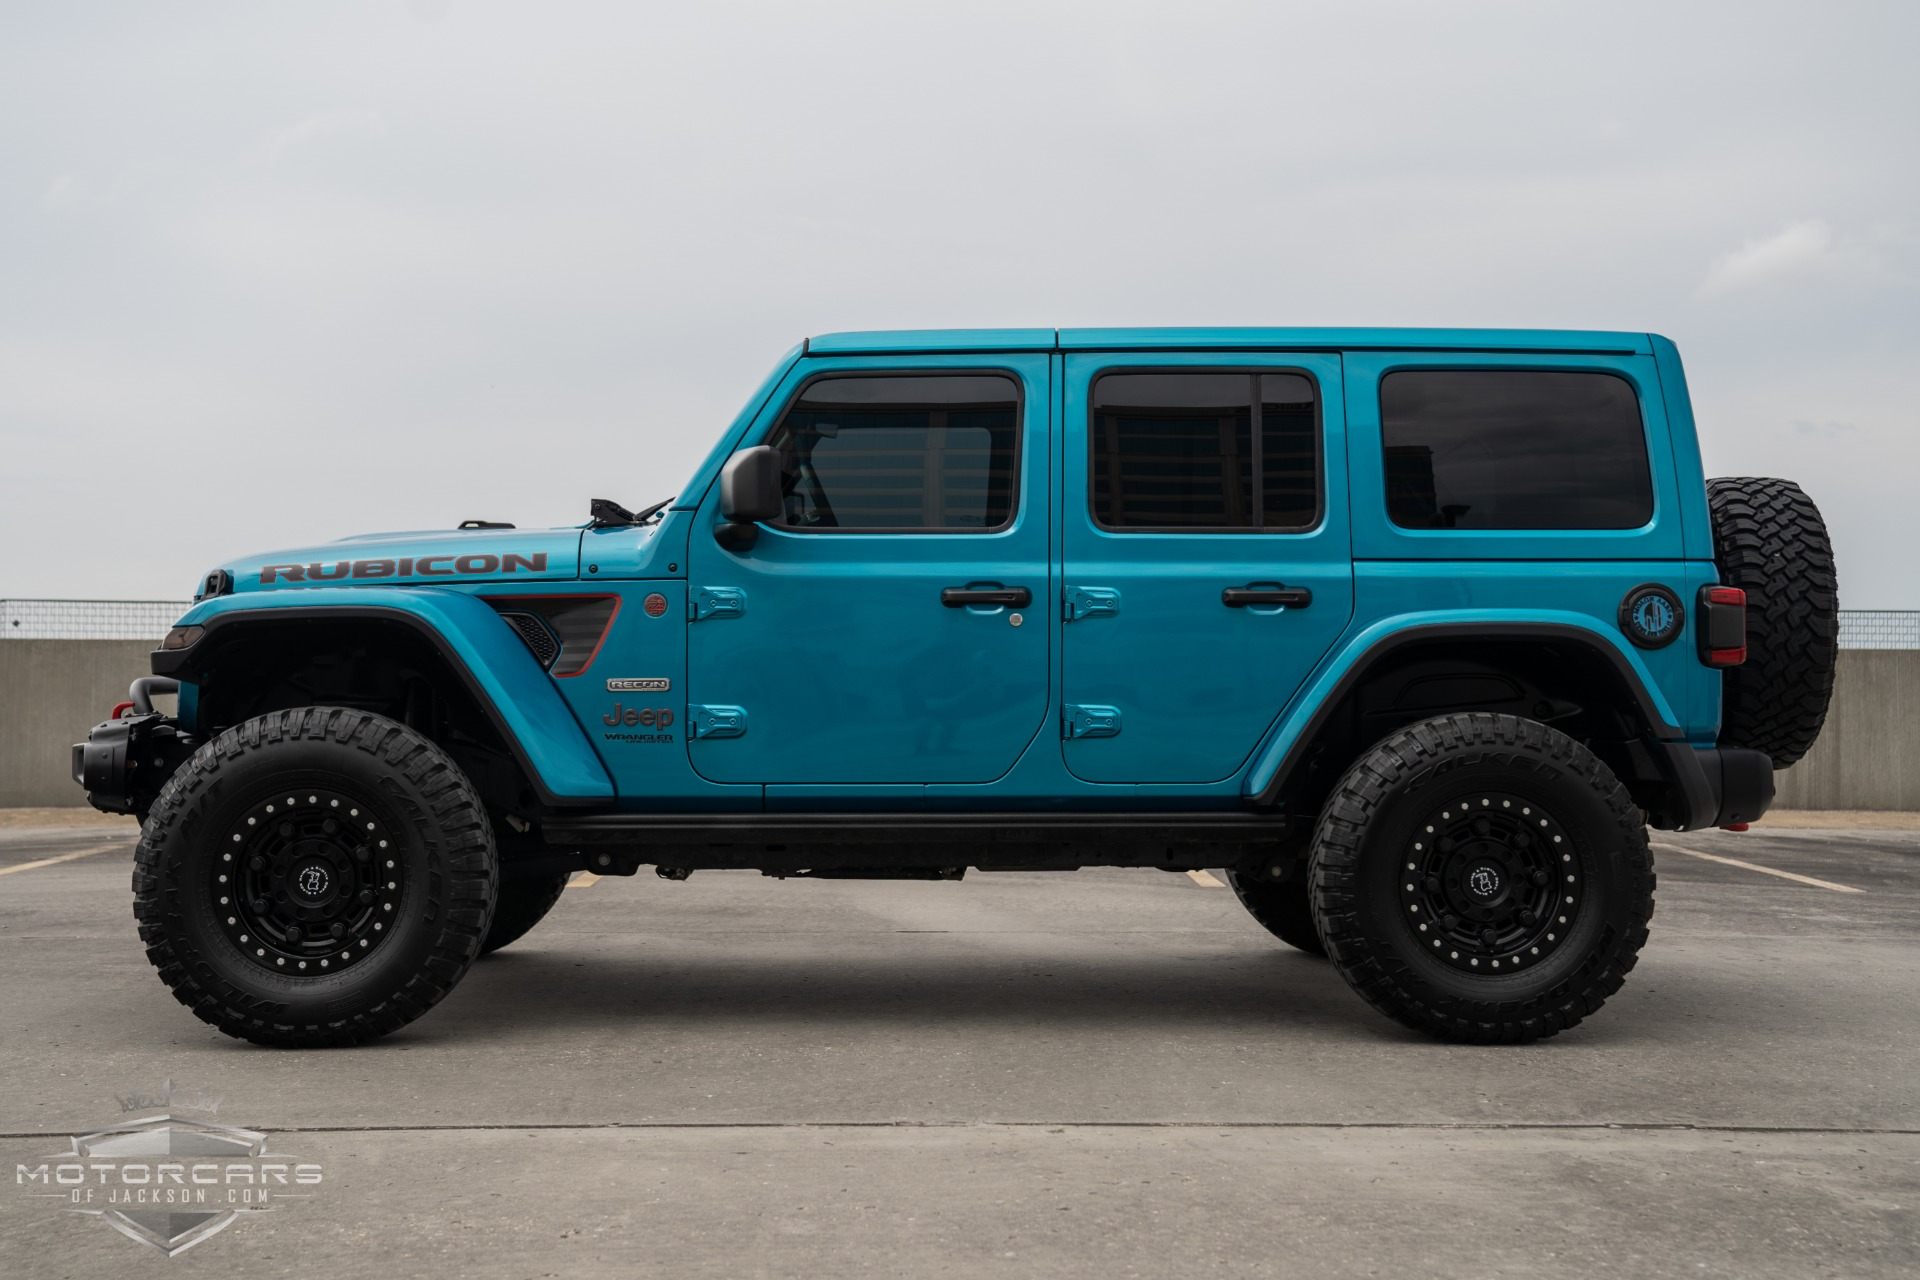 Used-2020-Jeep-Wrangler-Unlimited-Recon-4x4-for-sale-Jackson-MS